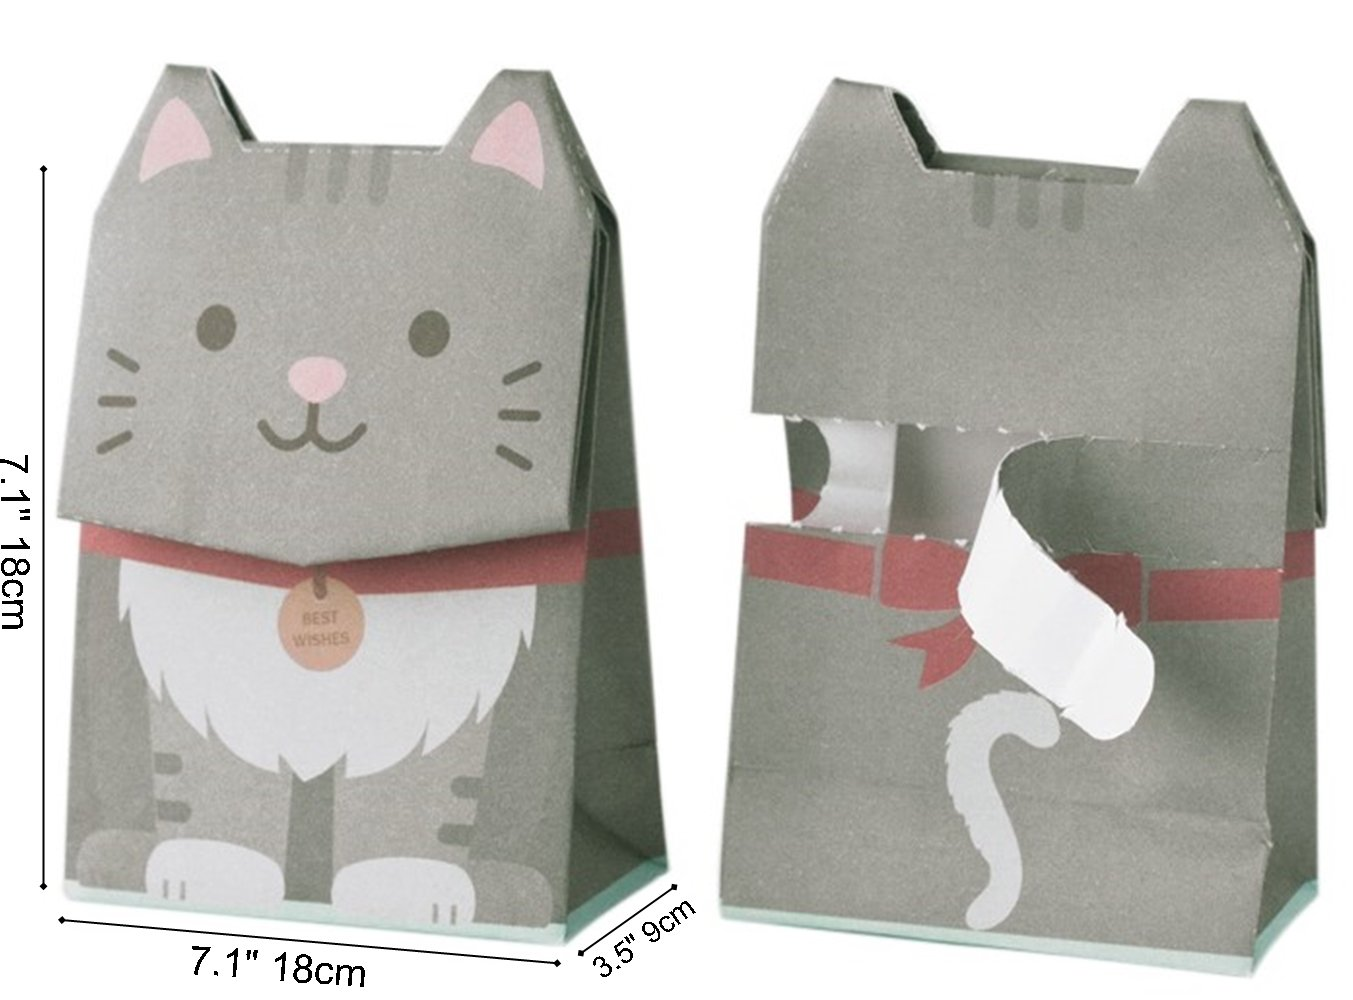 GOTOME Animal Gift Bag Origami Paper Tear to Open Gift Bag, 2017 Red Dot Desgin Award, Gray Cat, Large, 7.5x3.9x10.6 (19x10X27cm)